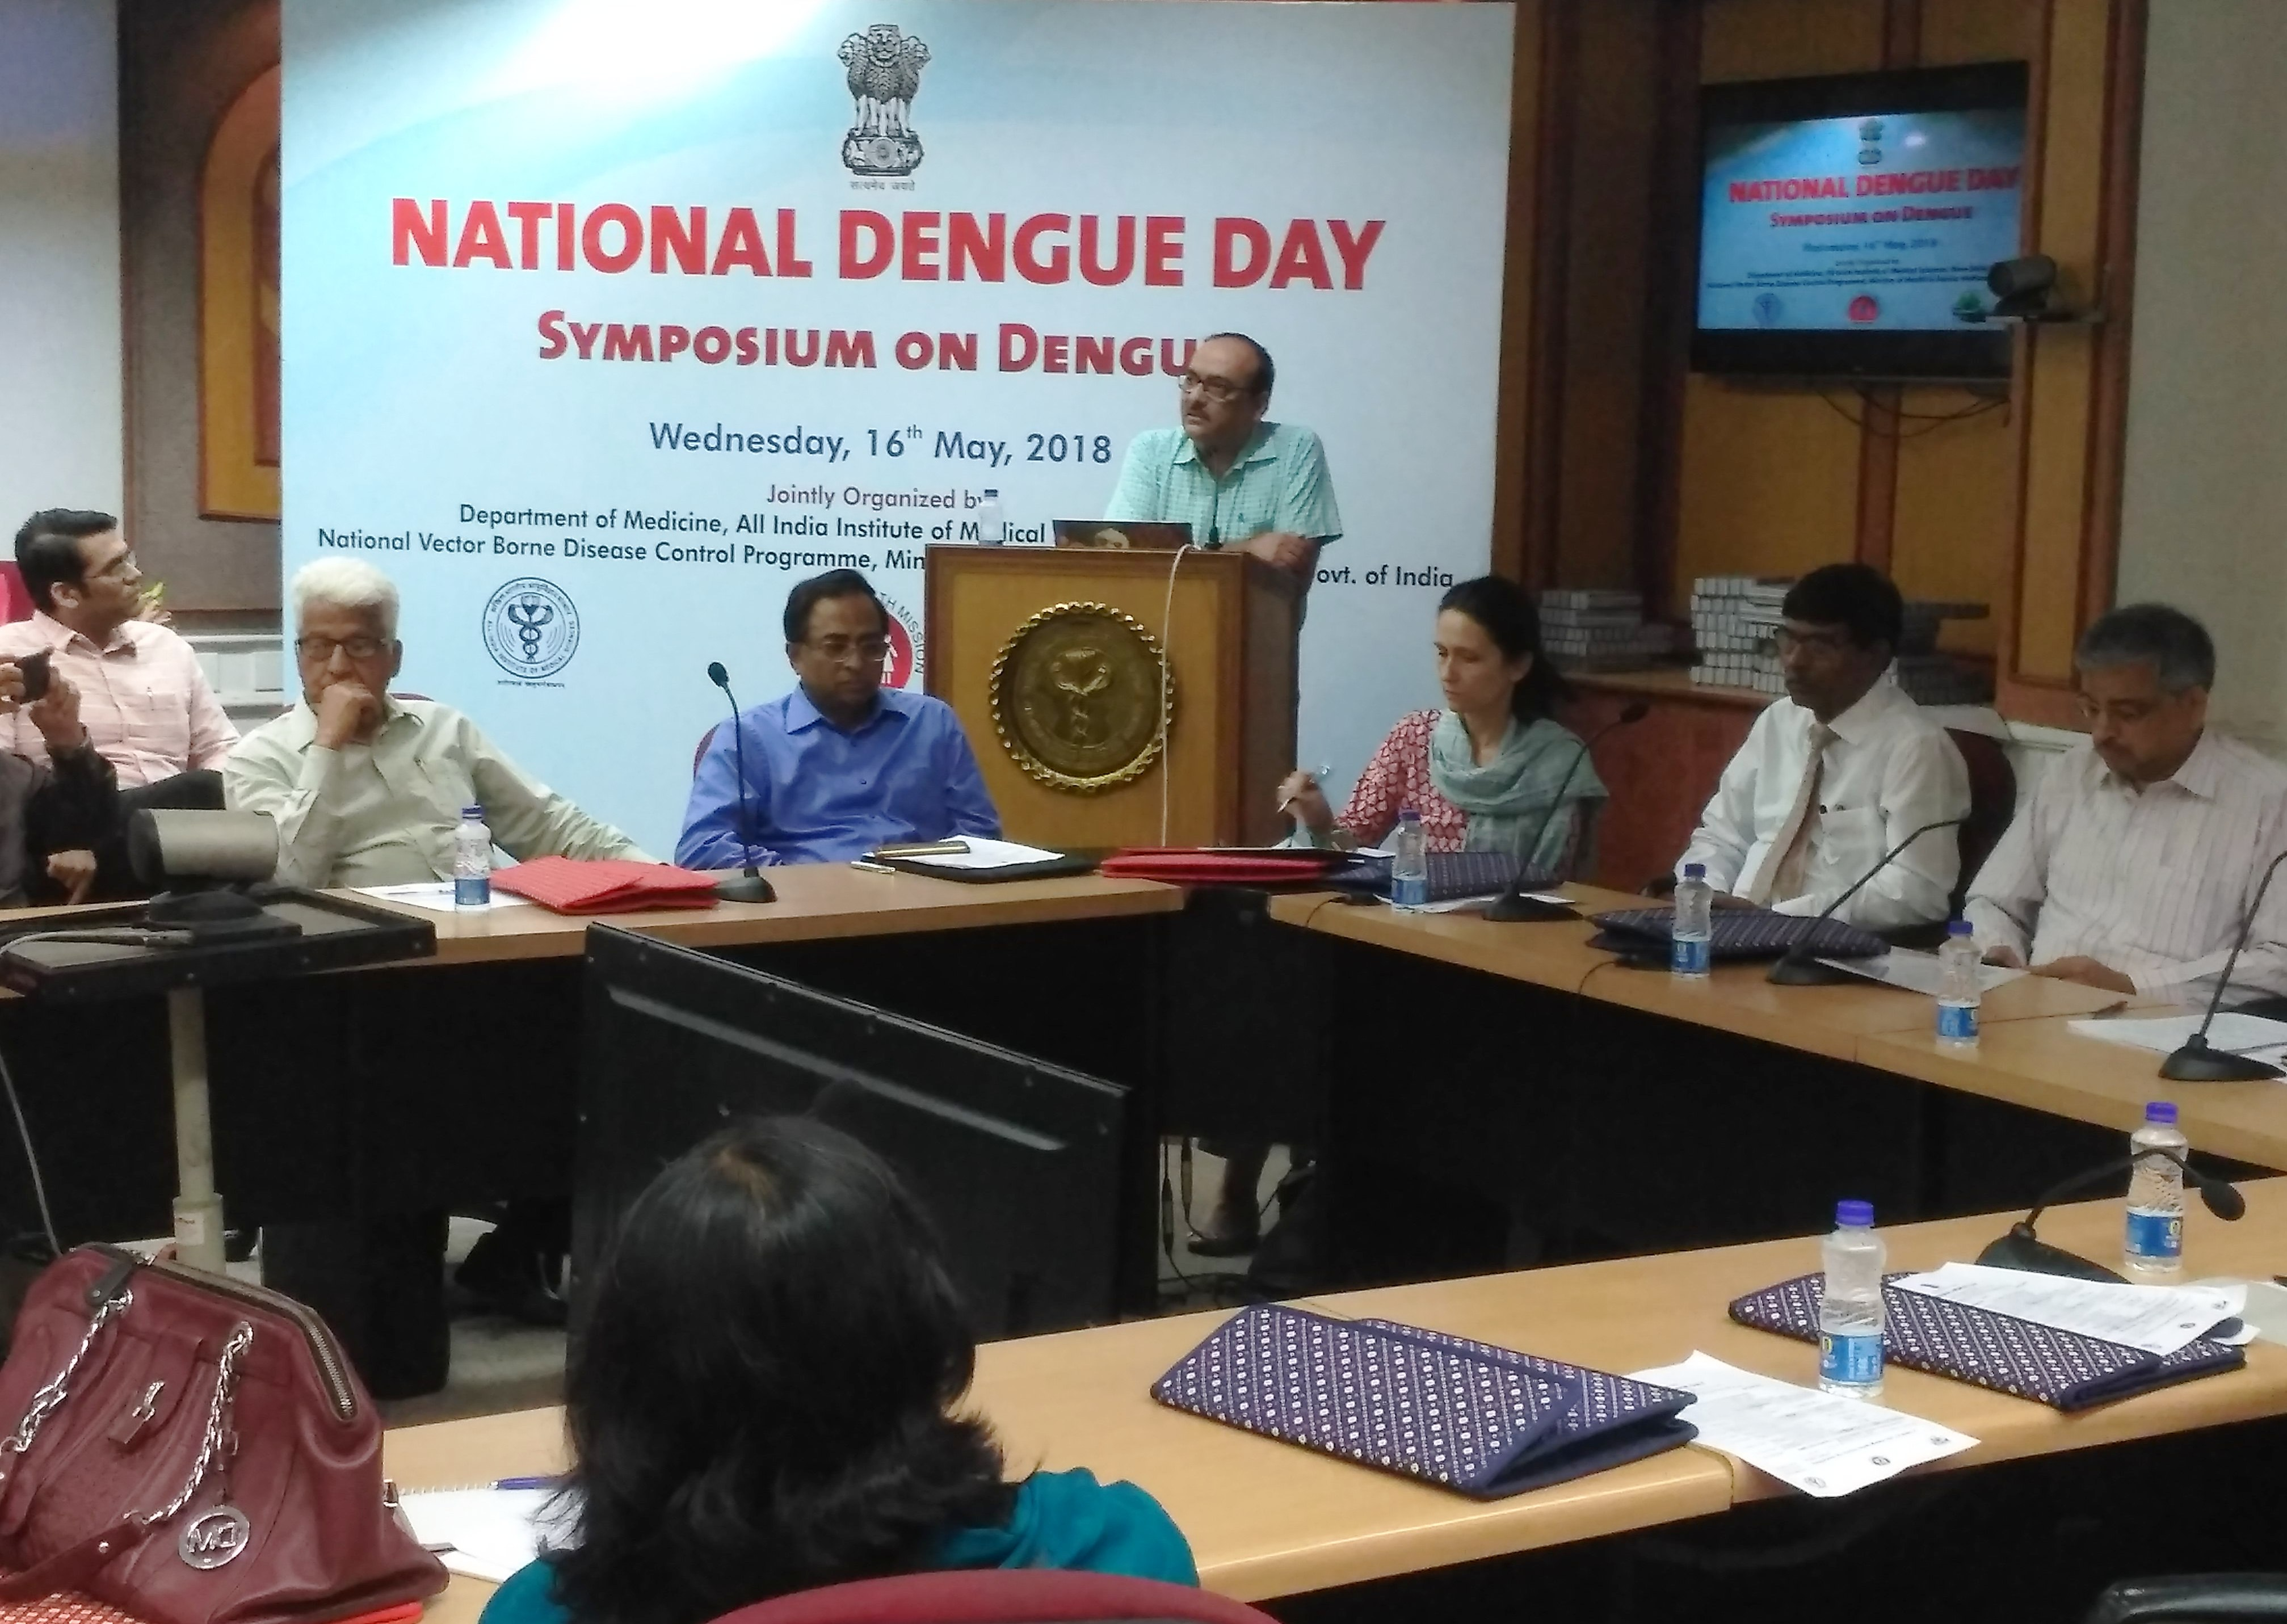 National Dengue Day